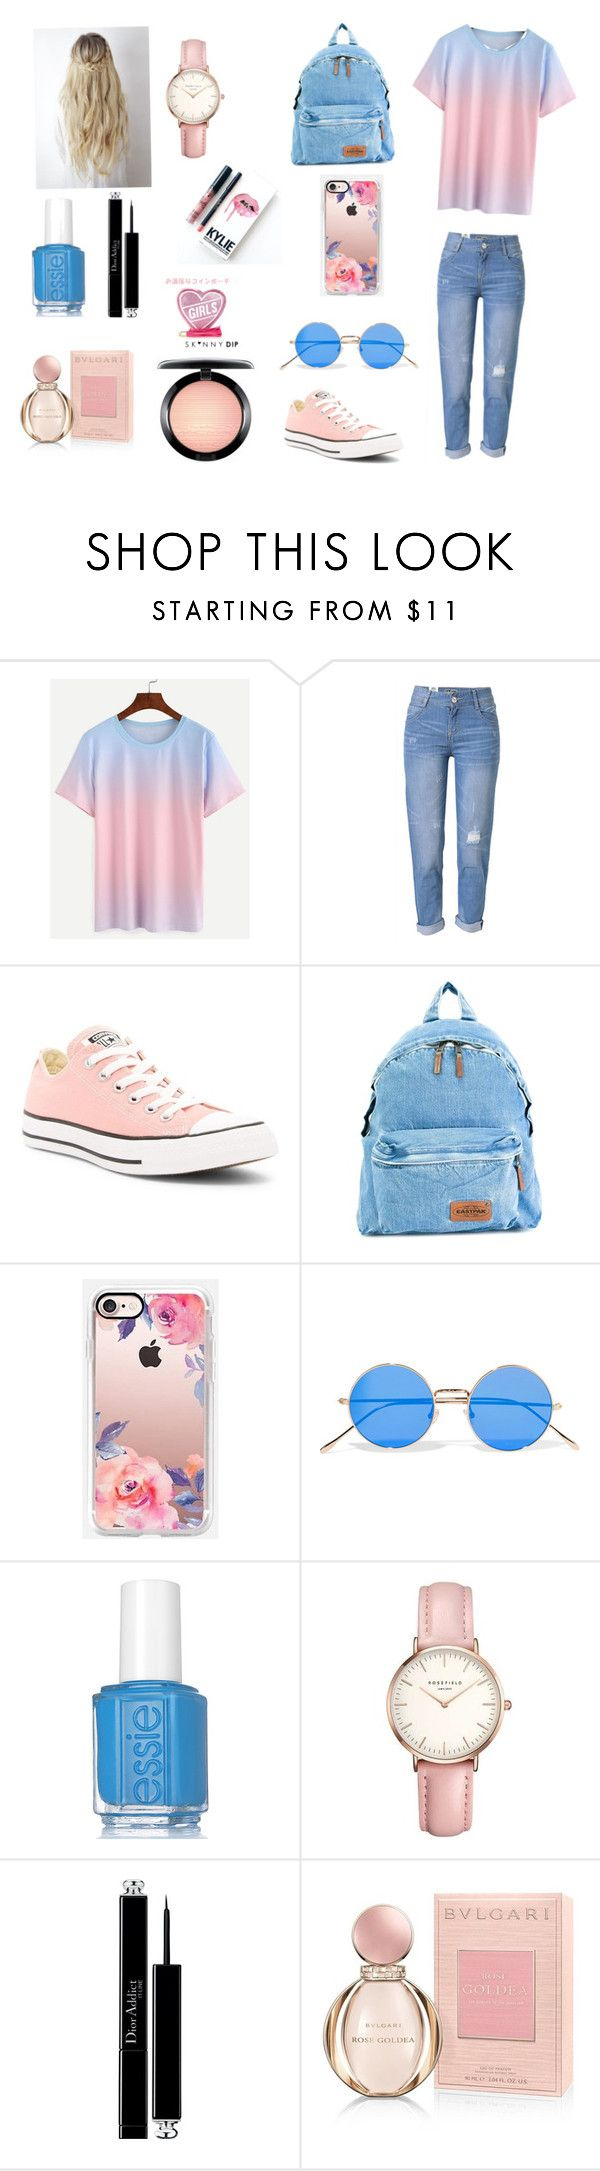 """Girls out wear"" by reinahafez ❤ liked on Polyvore featuring WithChic, Converse, Eastpak, Casetify, Illesteva, Essie, Topshop, Christian Dior, Bulgari and MAC Cosmetics"